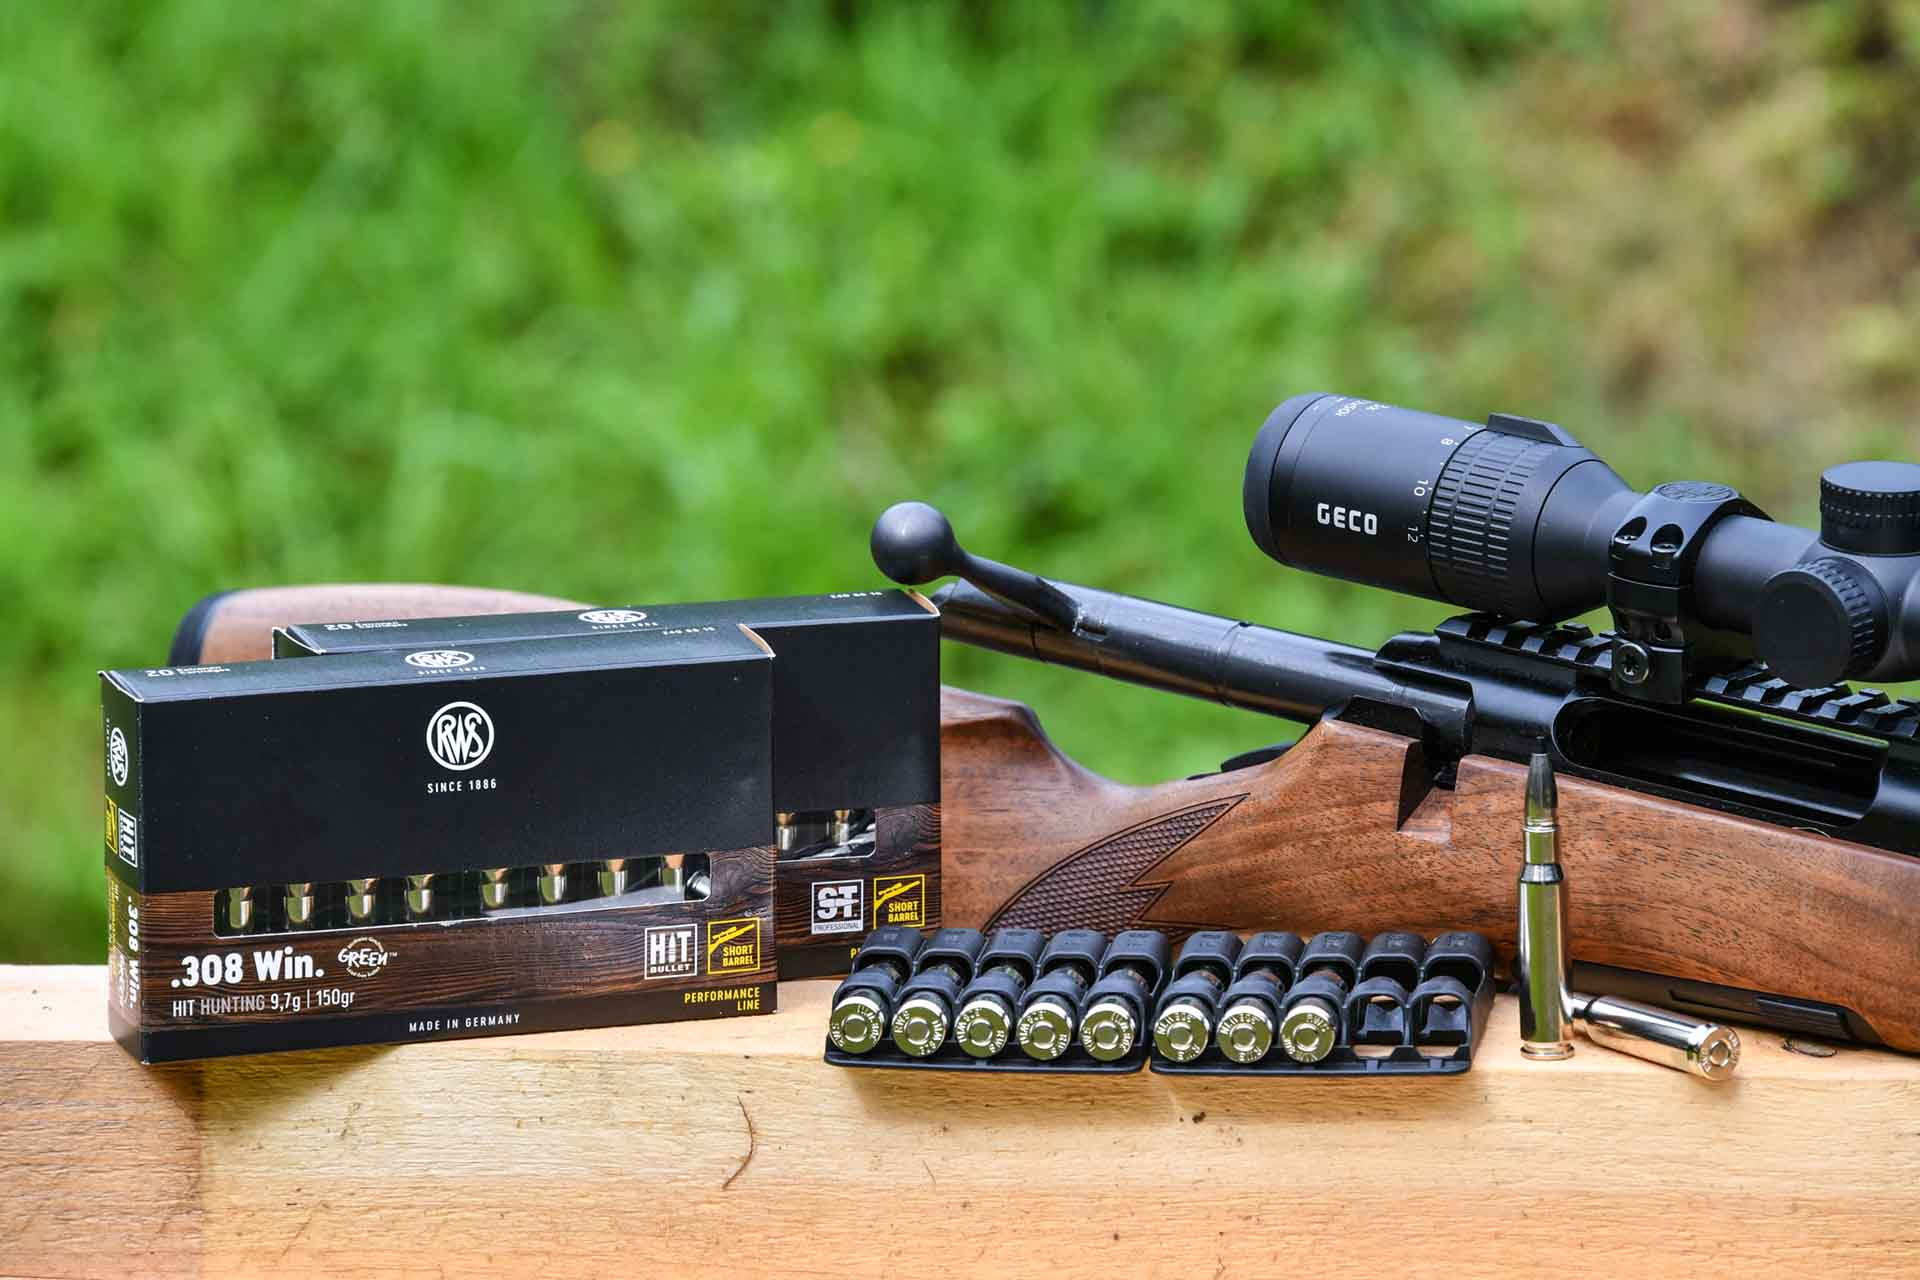 RWS Short Rifle ammunition with rifle